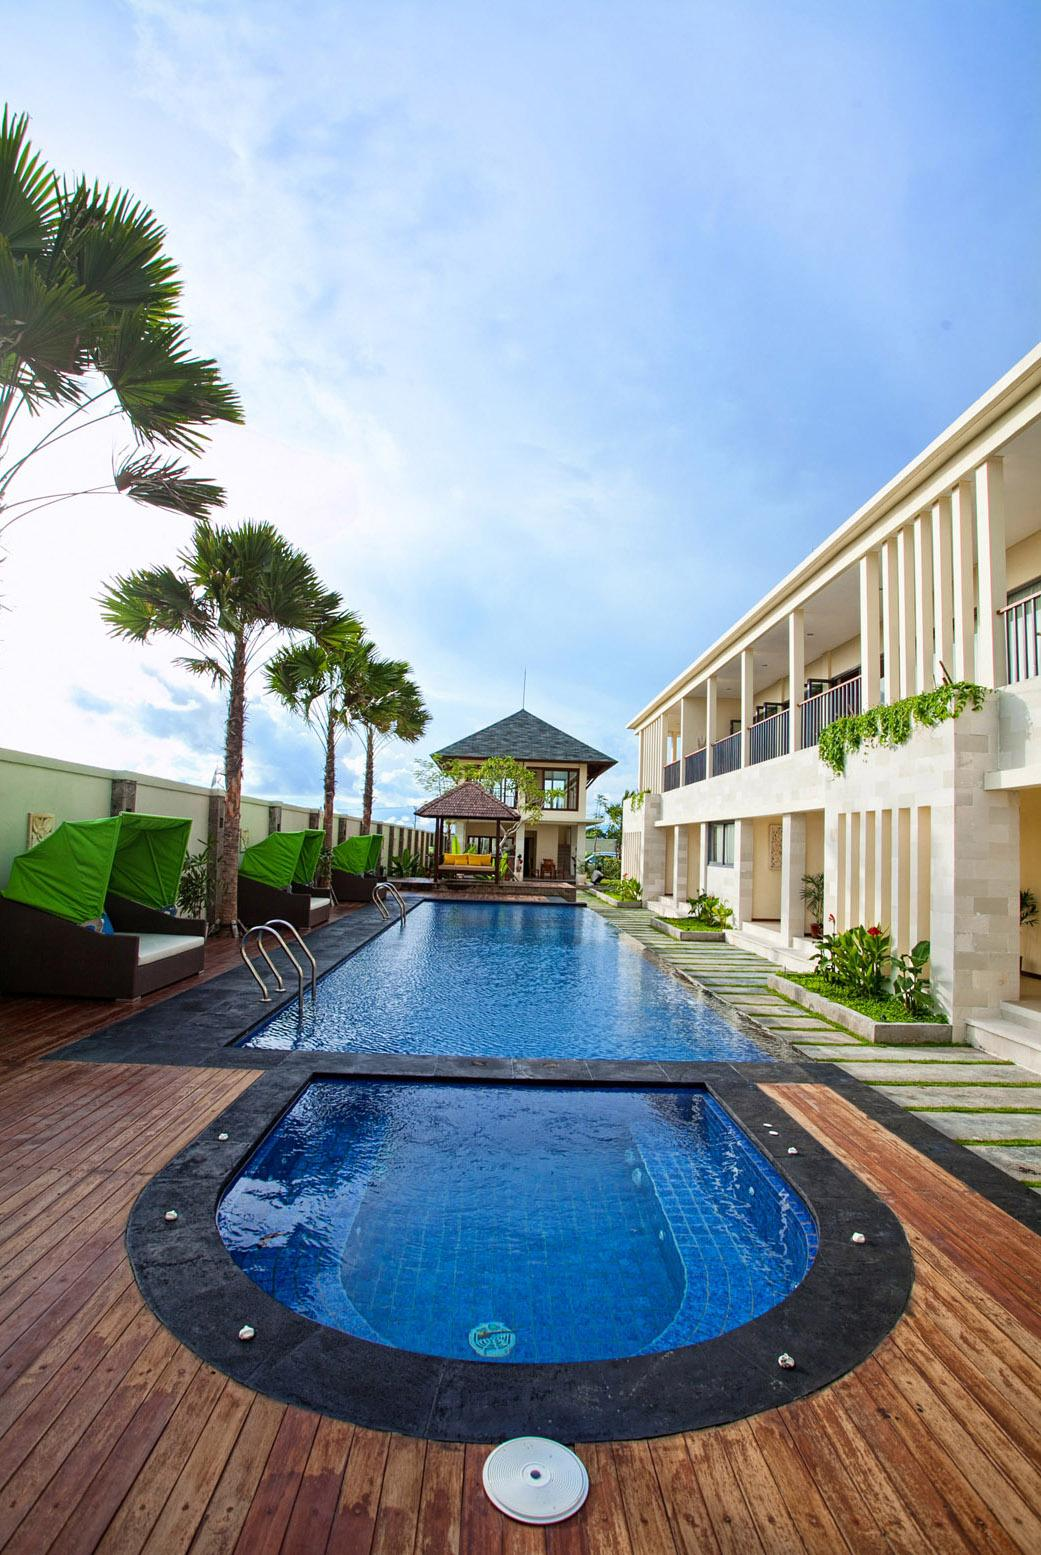 R & R Bali Bed and Breakfast Suites